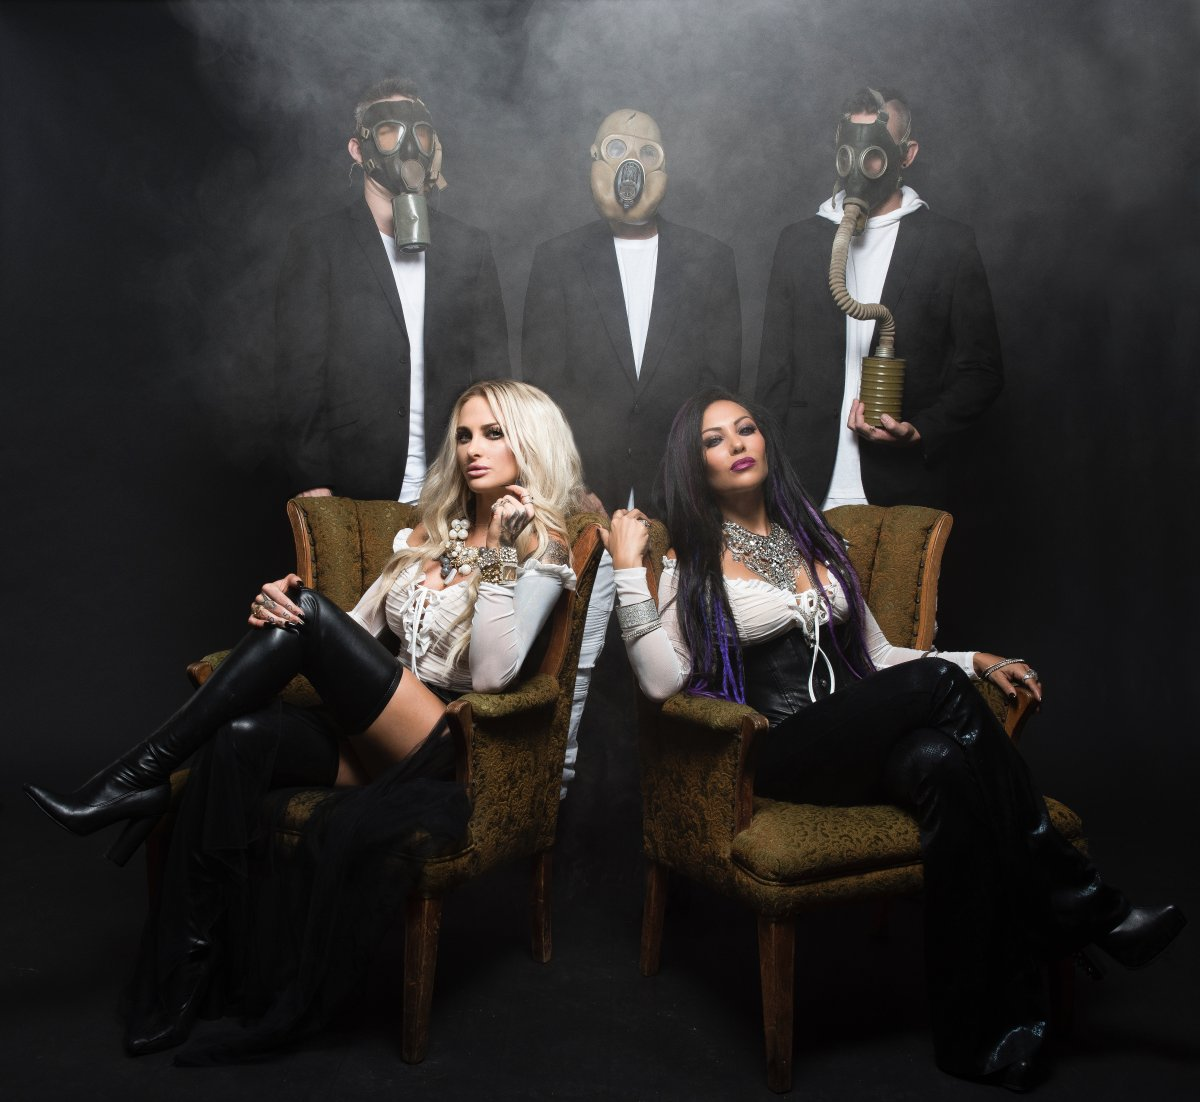 Thrash Metallers BUTCHER BABIES New Album 'Lilith' Out Now!